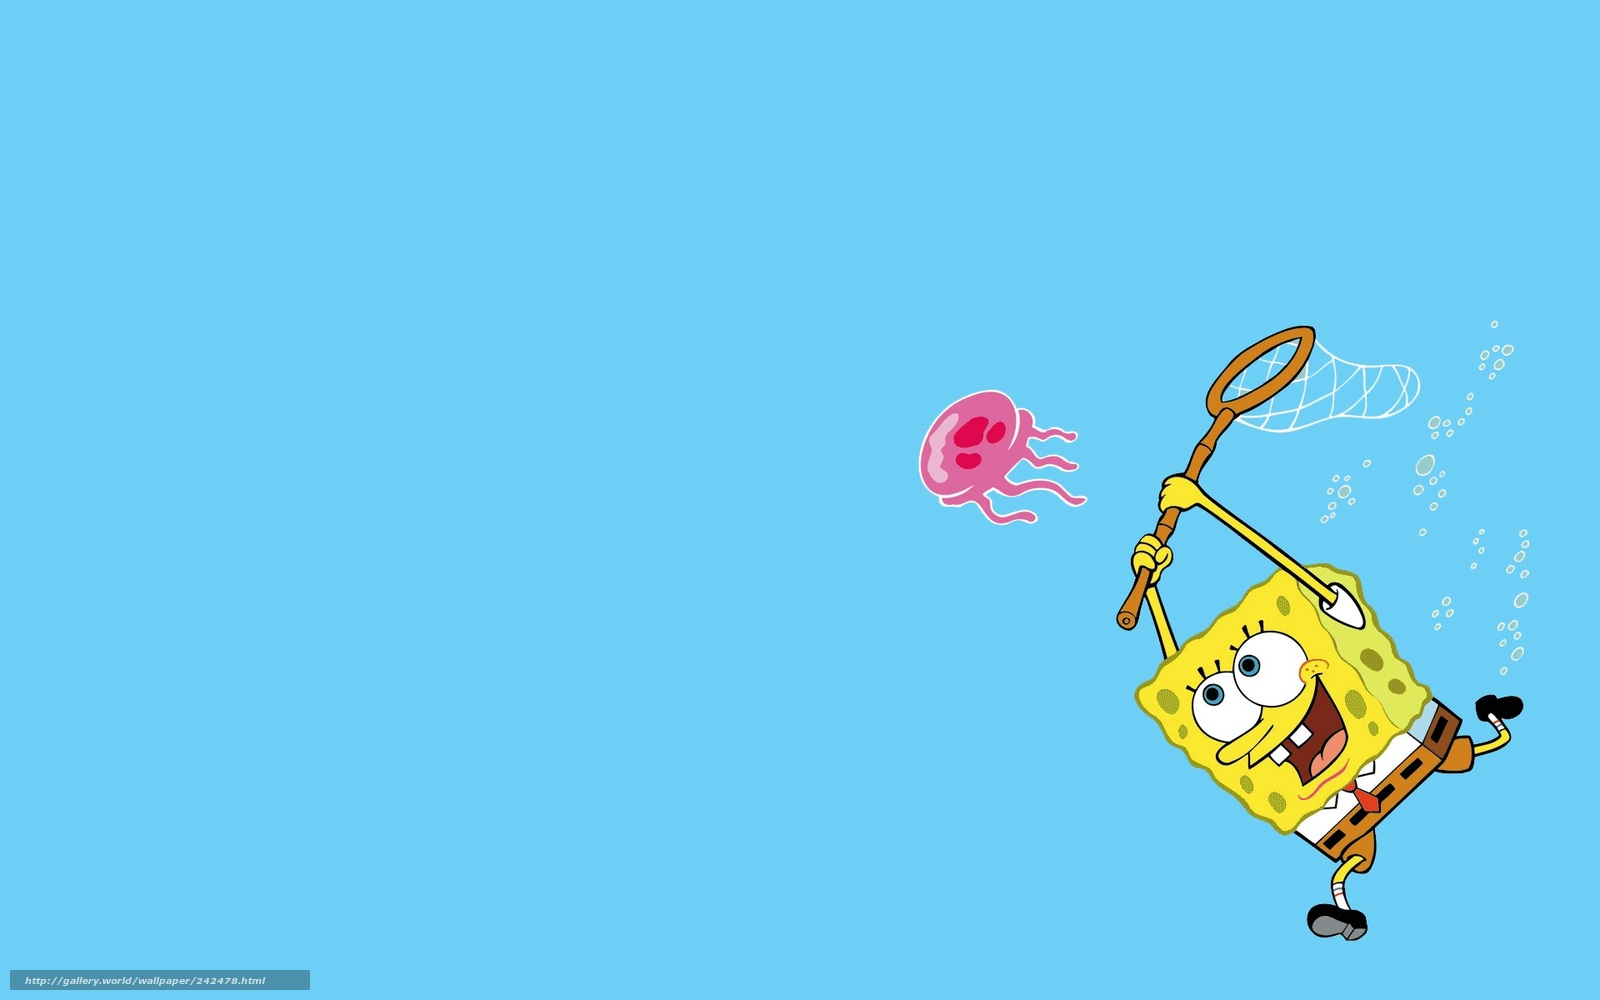 Download wallpaper spongebob, squarepants, sponge bob, square pants ...